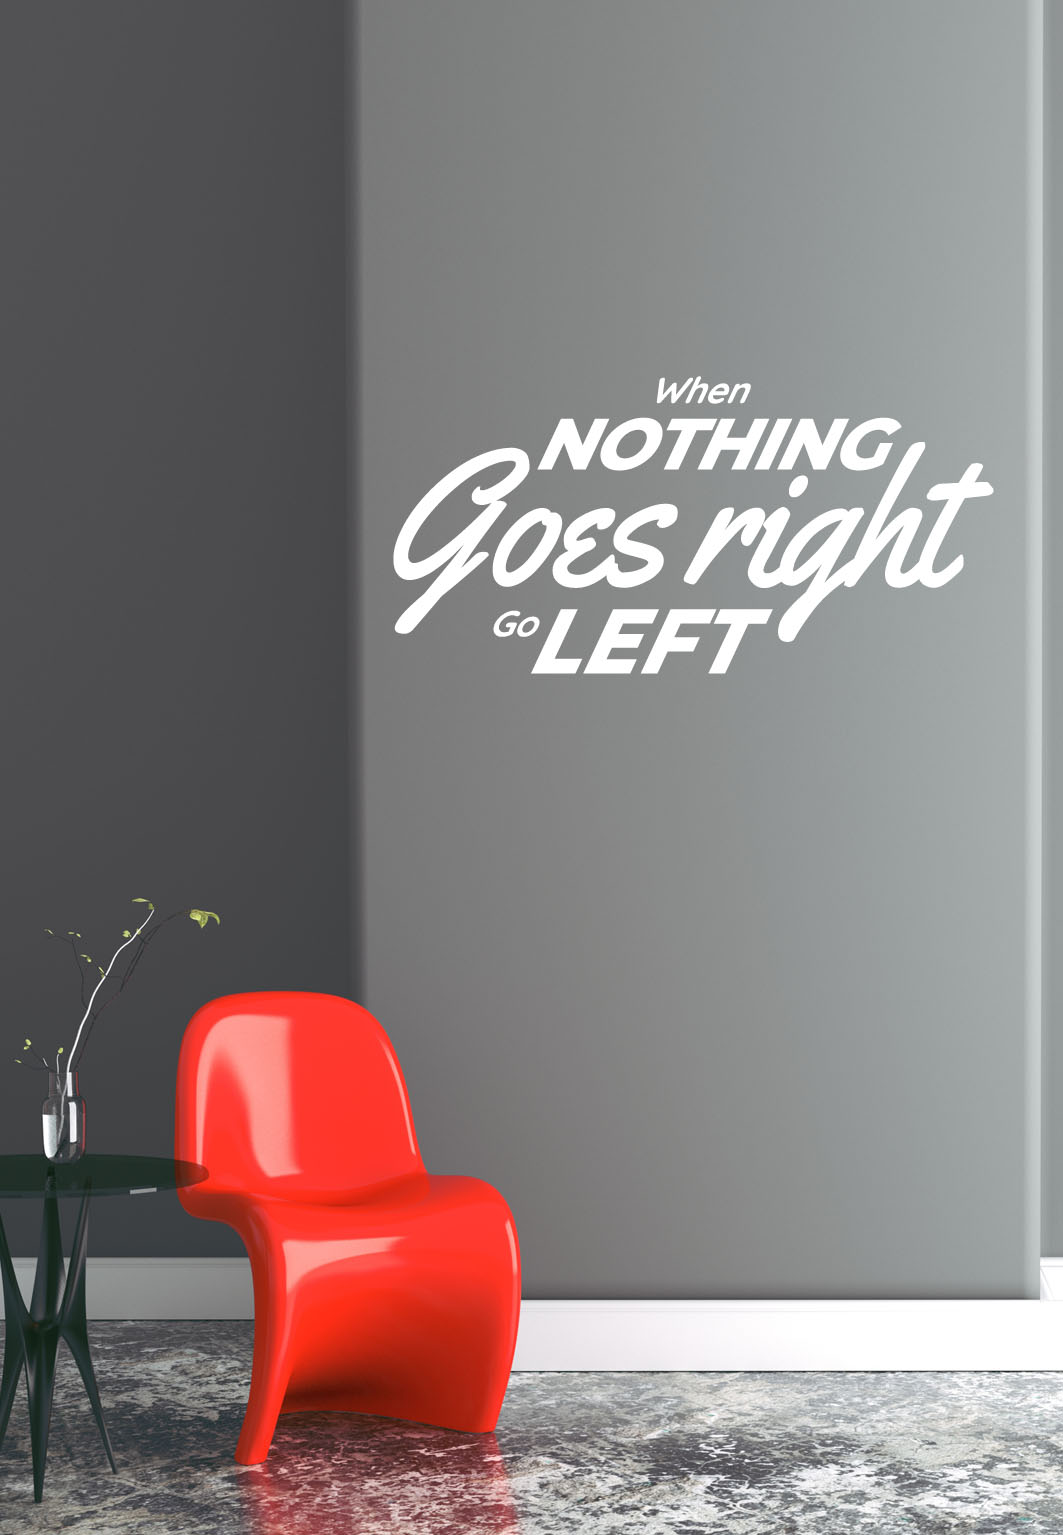 מדבקת קיר - When nothing goes right go left